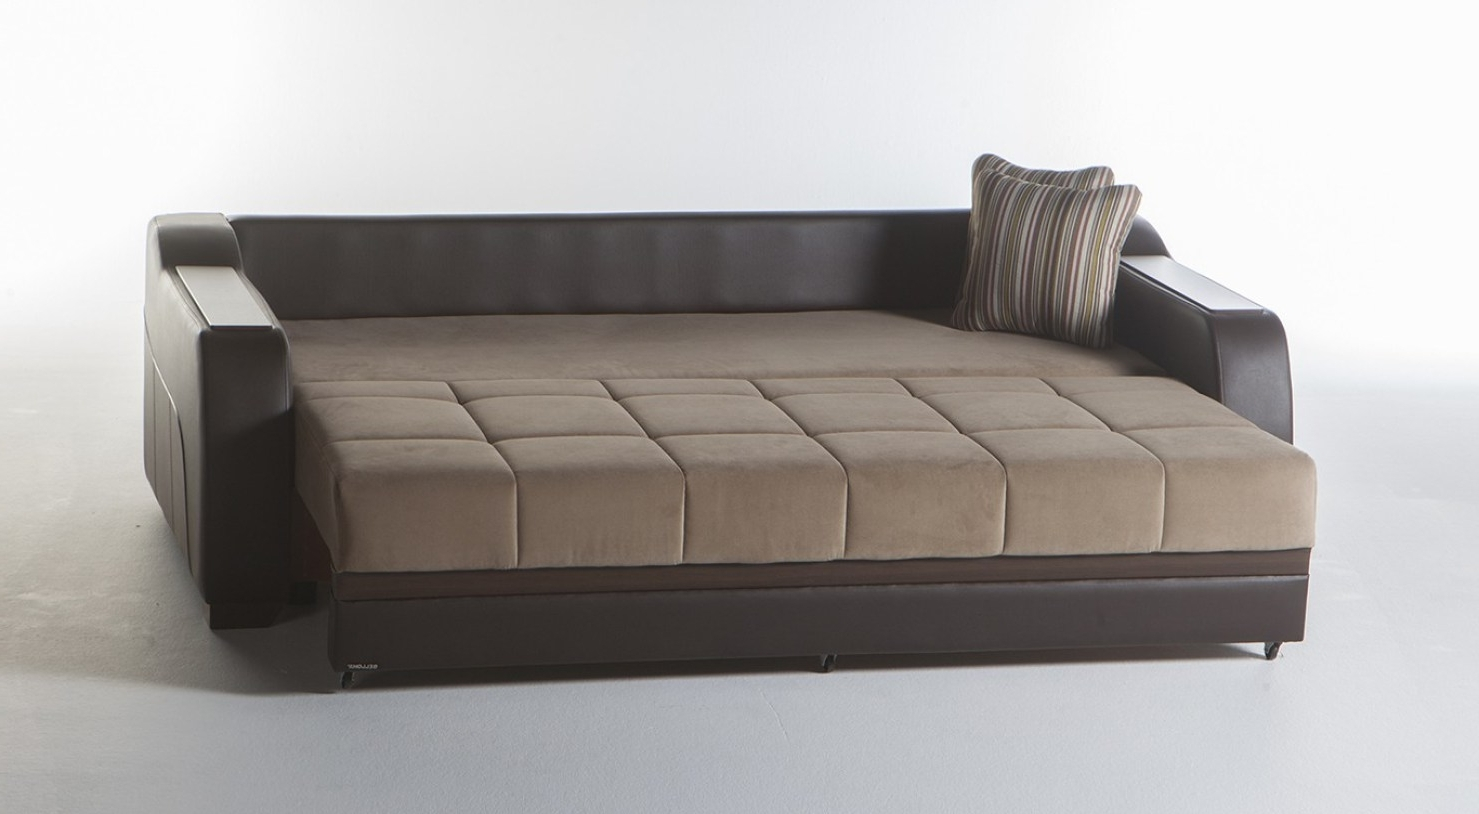 Sectional Sofas In Philippines For Popular Hideaway Sofa Bed Philippines (View 10 of 15)